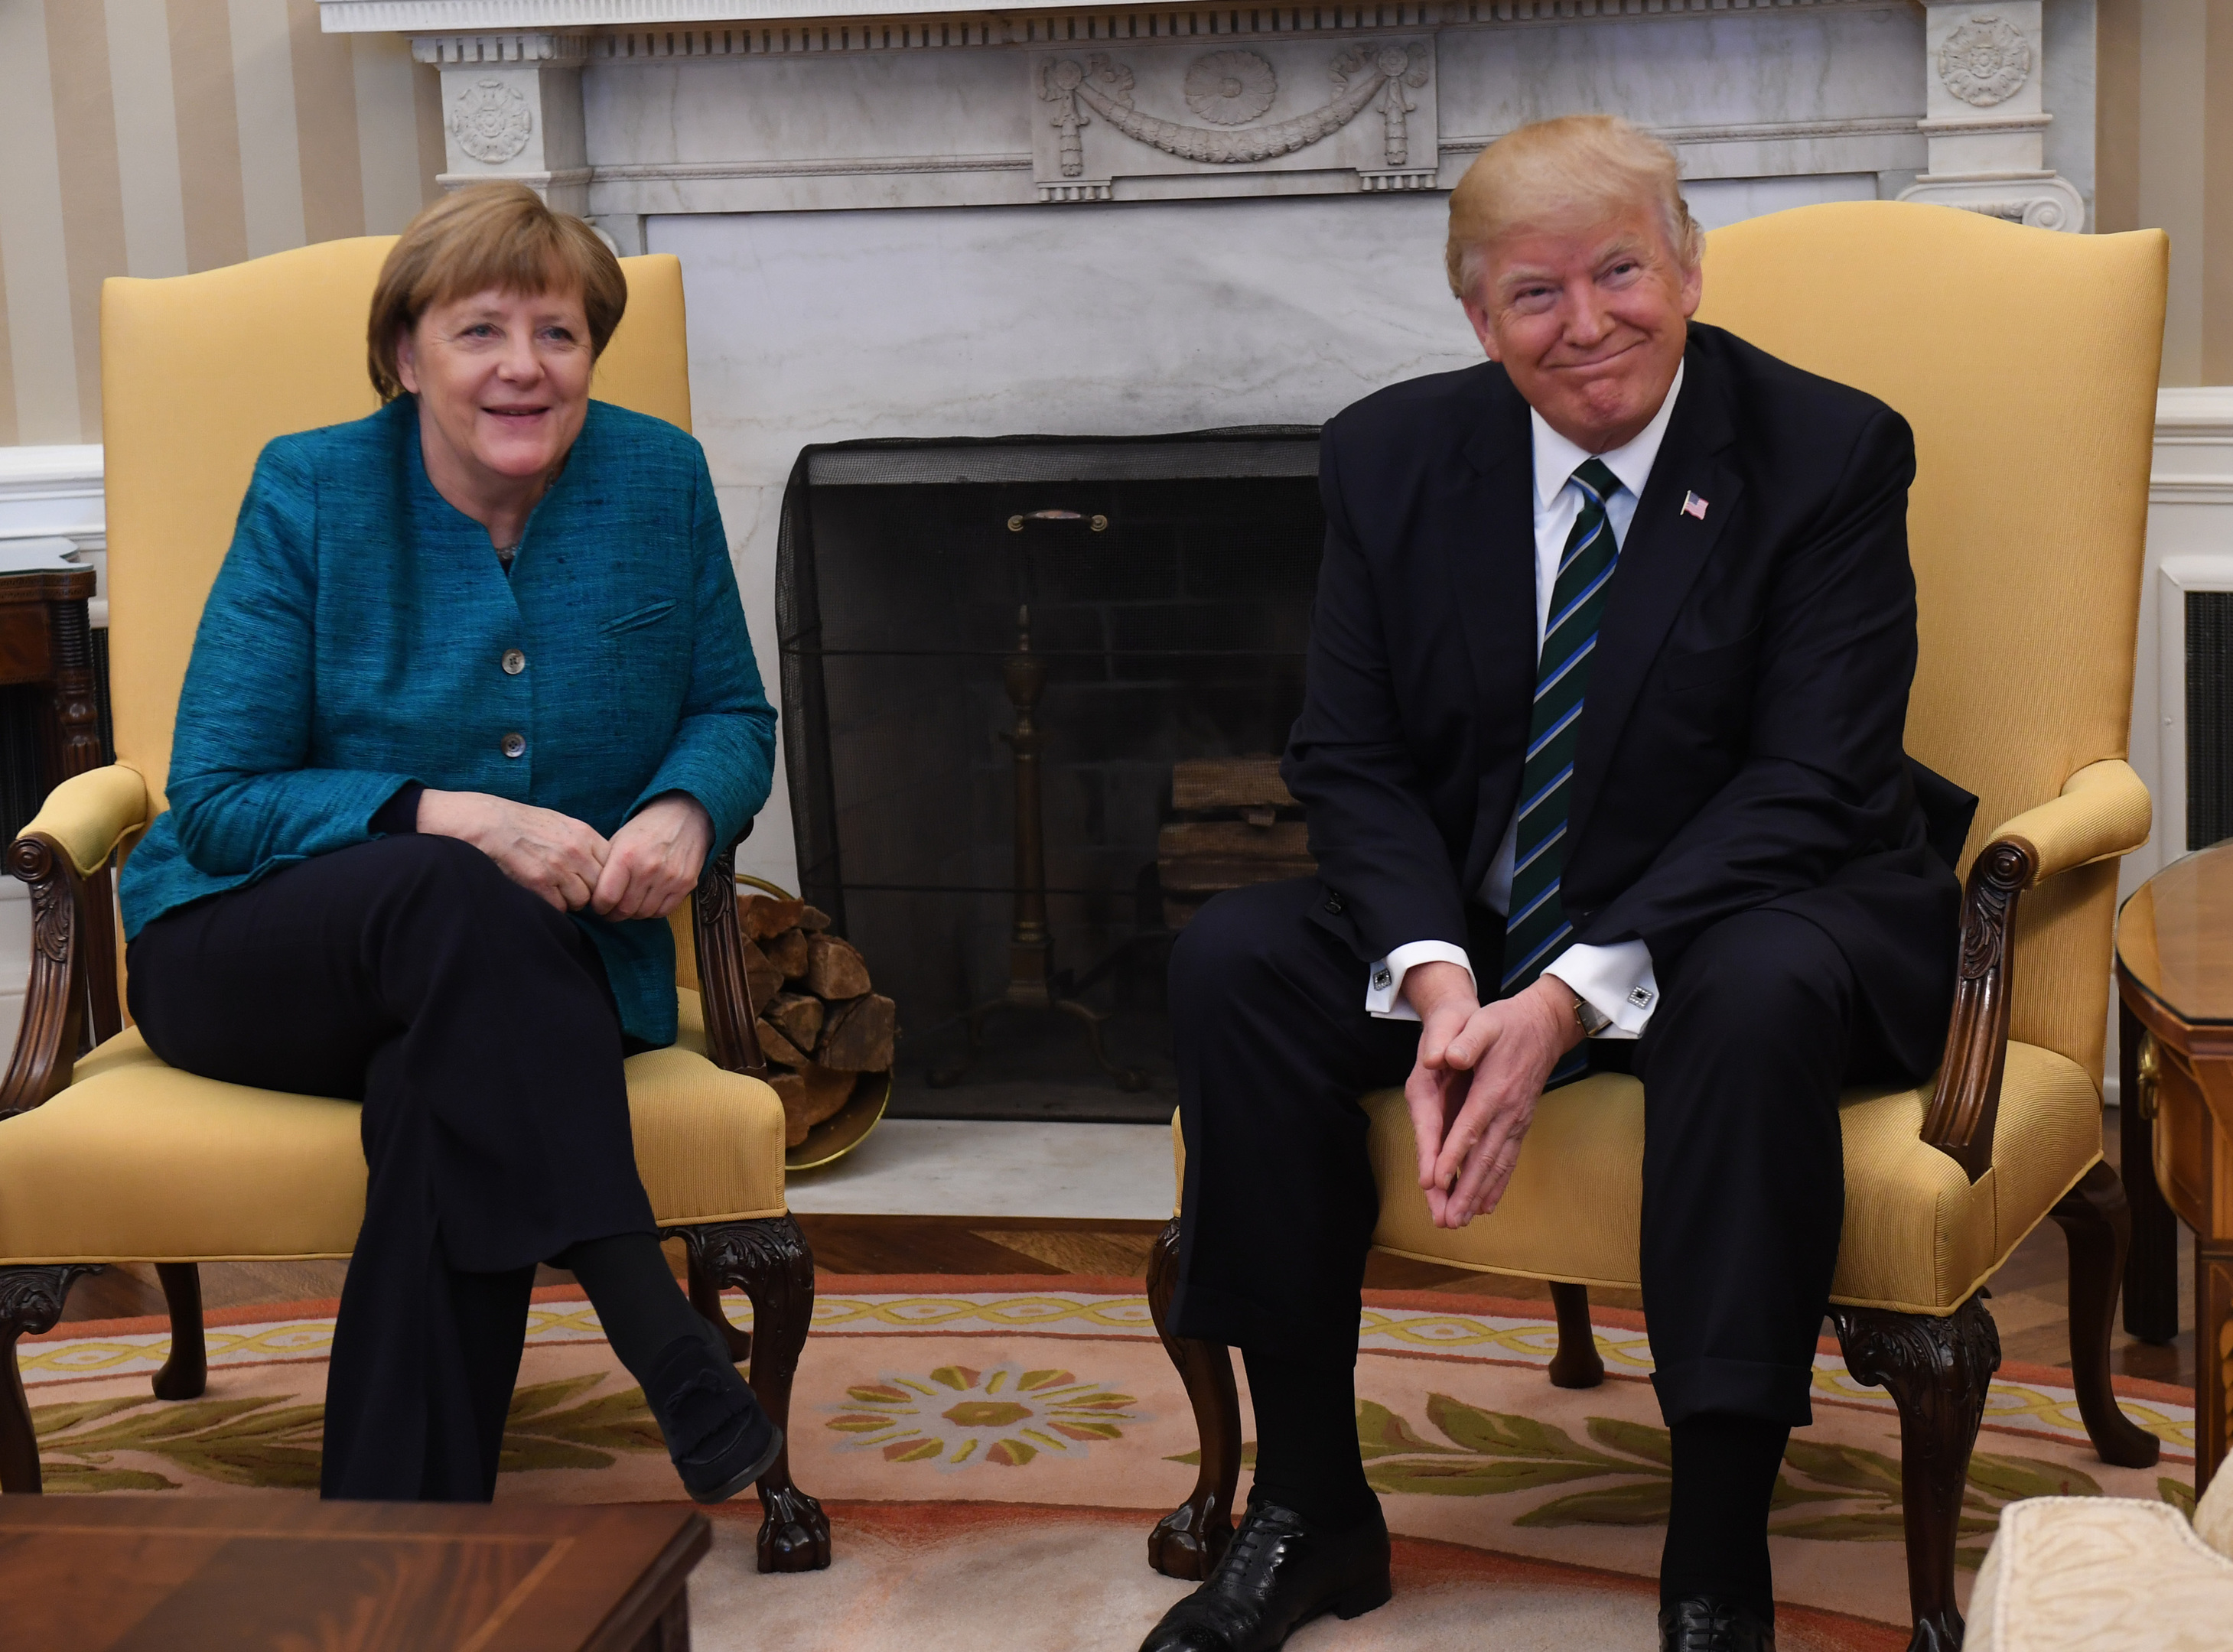 German Chancellor Angela Merkel meets with U.S. President Donald Trump in the Oval Office of the White House on March 17, 2017 in Washington, DC. (Pat Benic-Pool/Getty Images